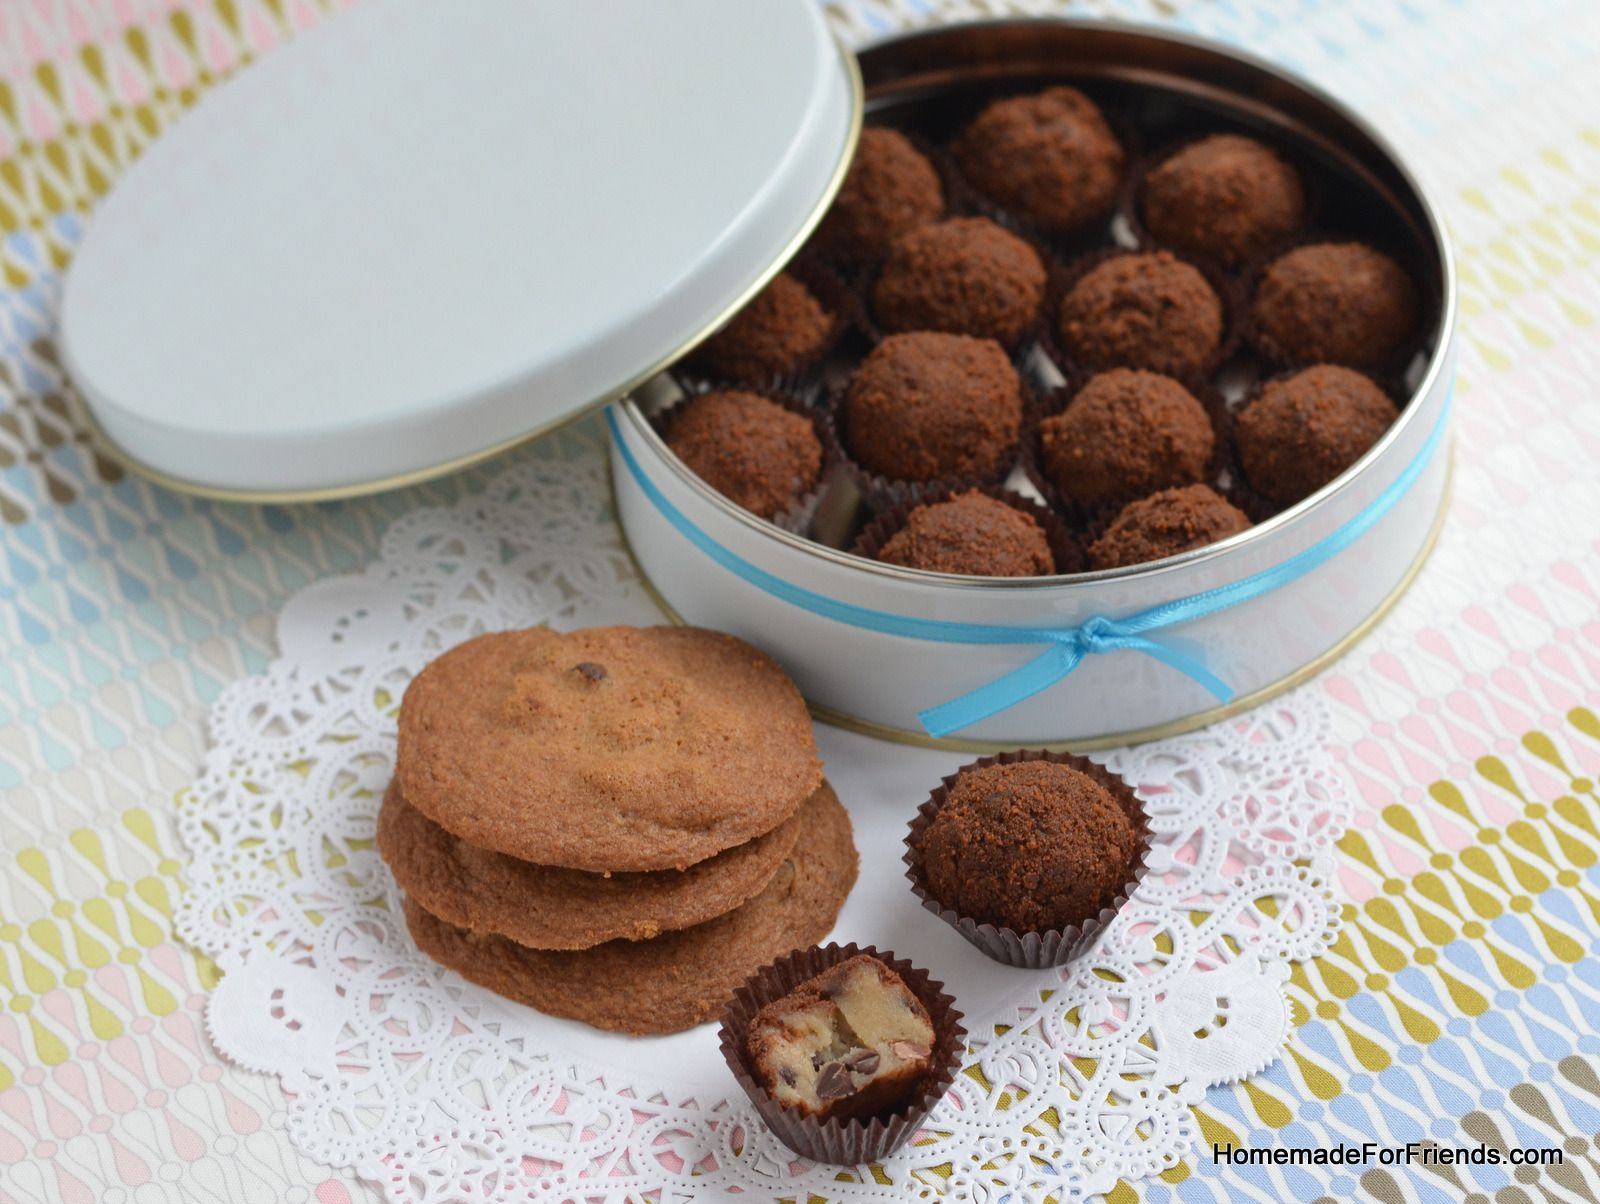 Awesome With A Chewy Cookie Dough Inside A Crunchy Cookie Coating, Itu0027s Hard To  Resist Just